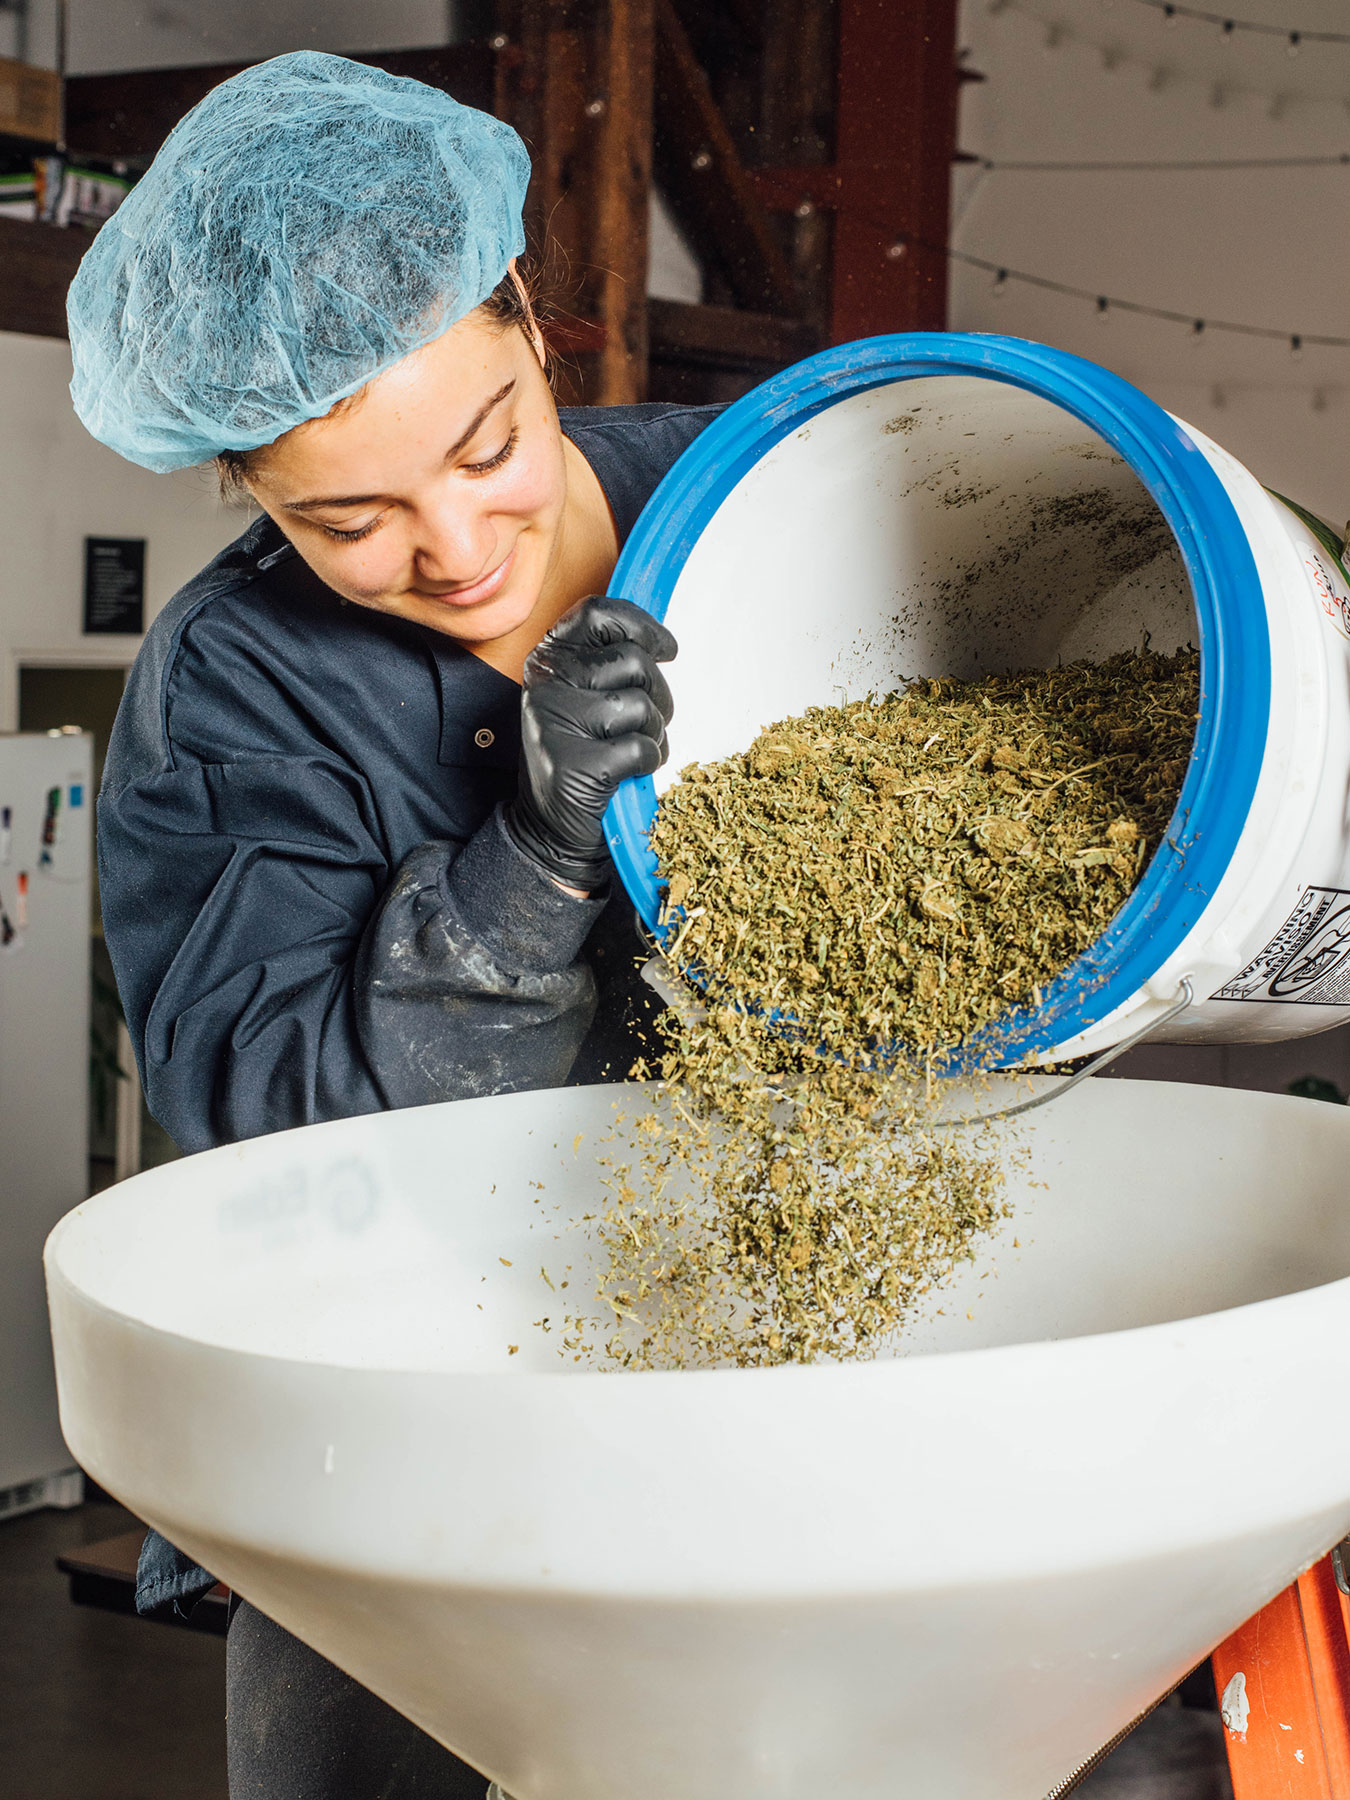 starting material, extraction, cannabis concentrate, marijuana concentrate